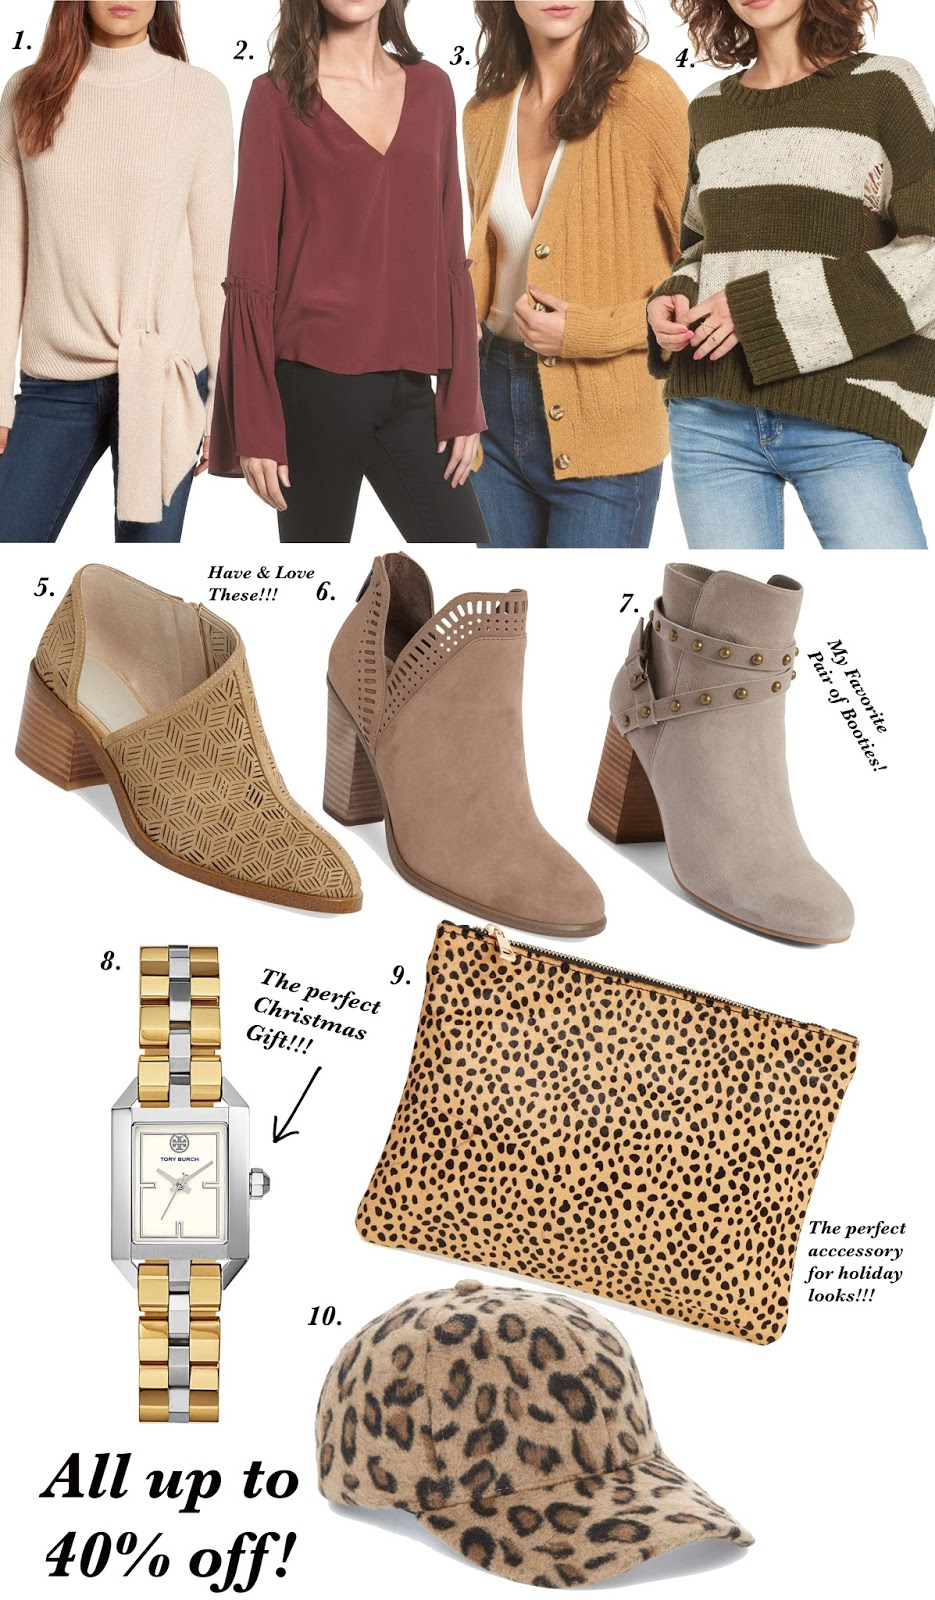 Nordstrom Sale Picks - Something Delightful Blog!